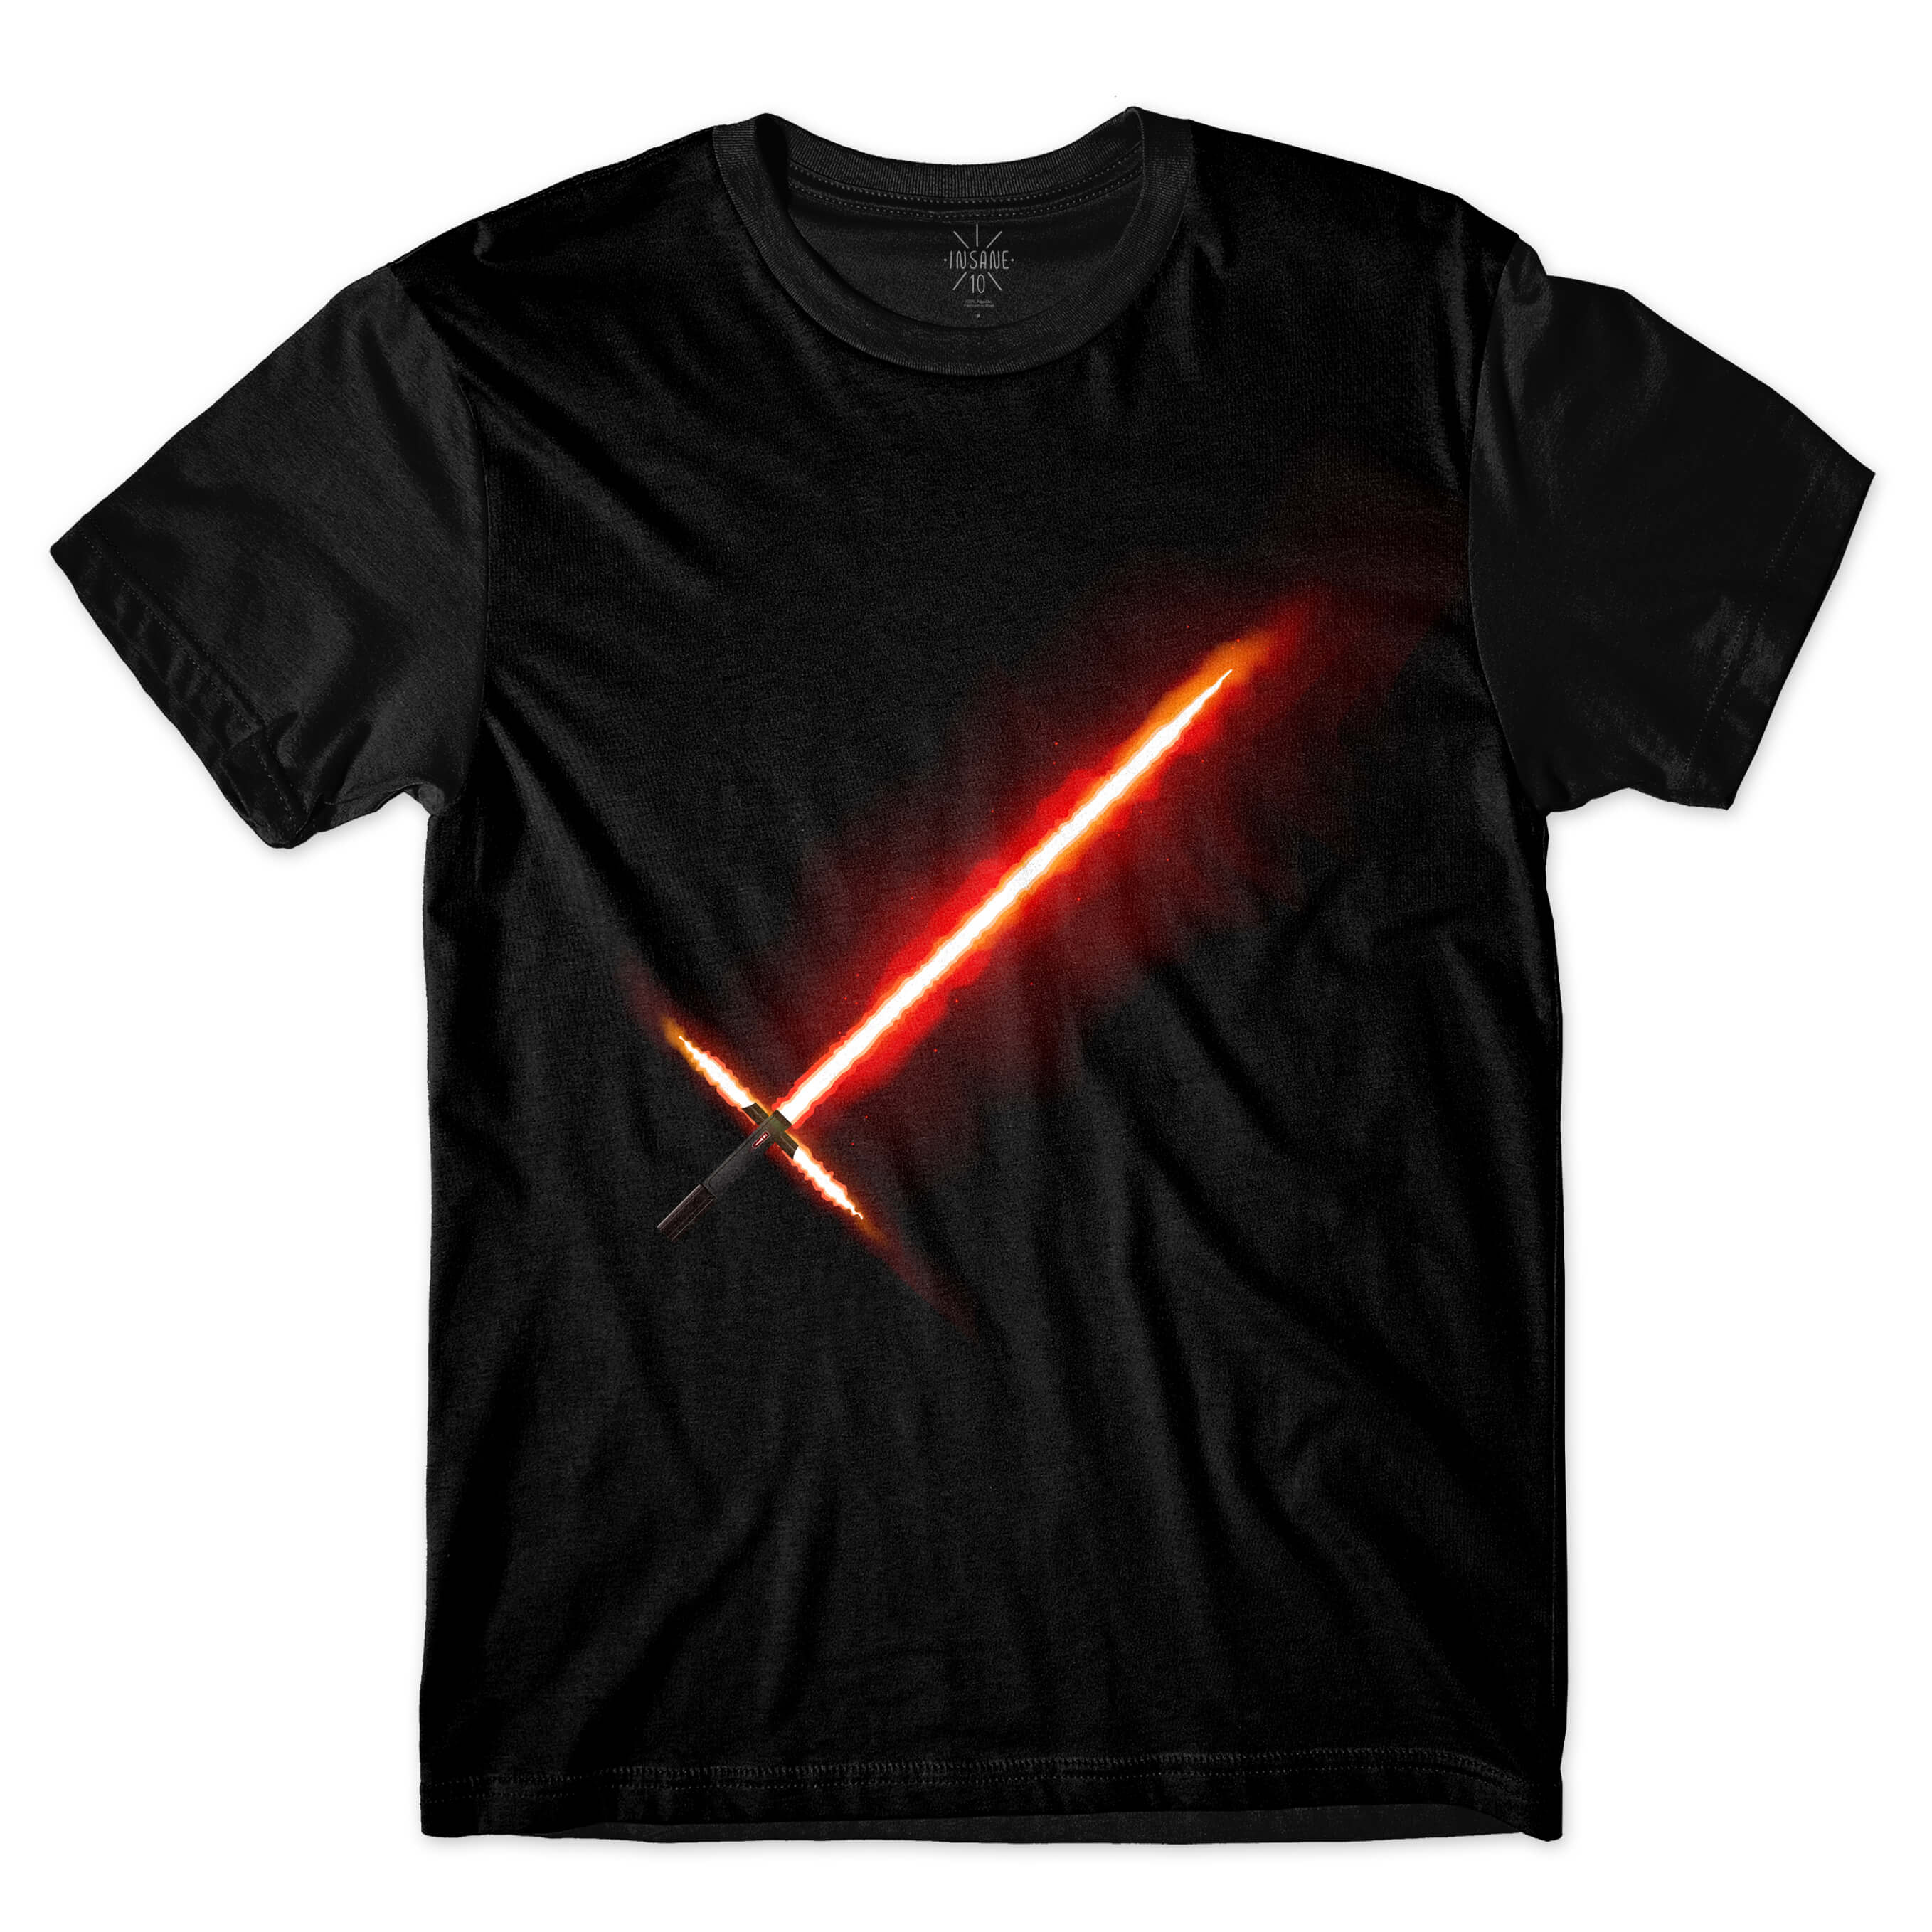 Camiseta Insane 10 Star Wars Sabre Kylo Ren Full Print Preto